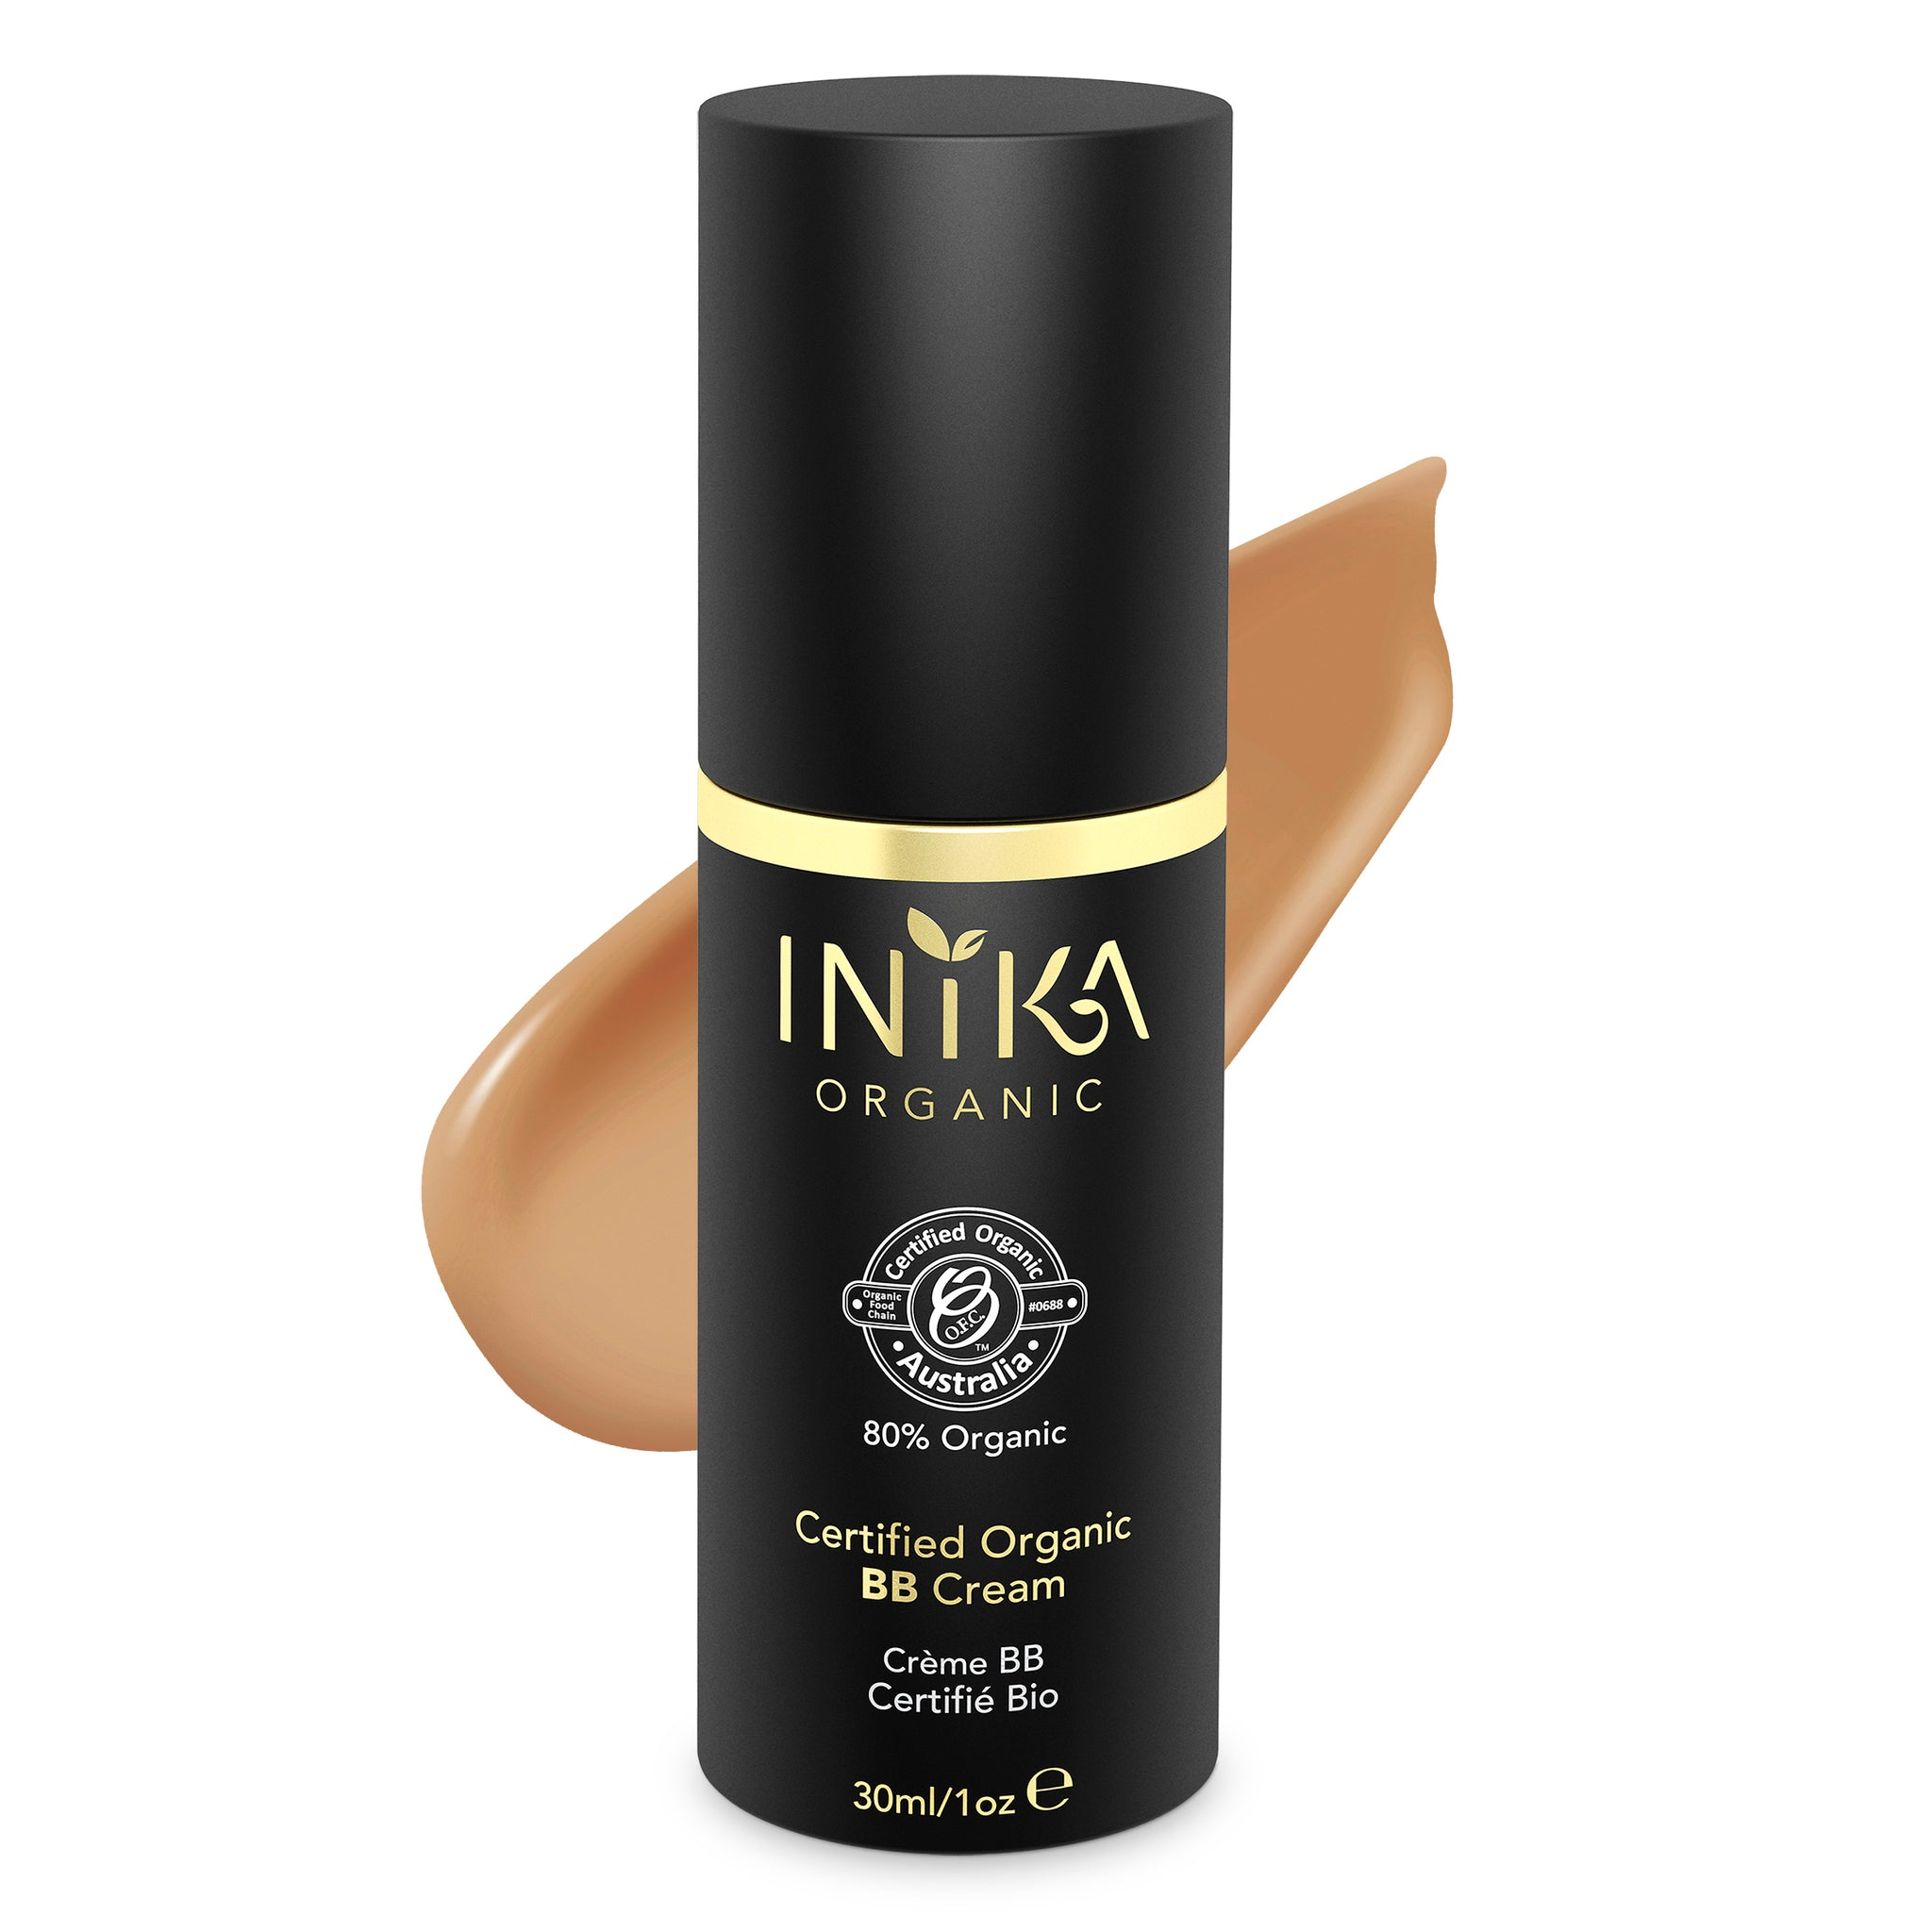 INIKA - Certified Organic BB Cream